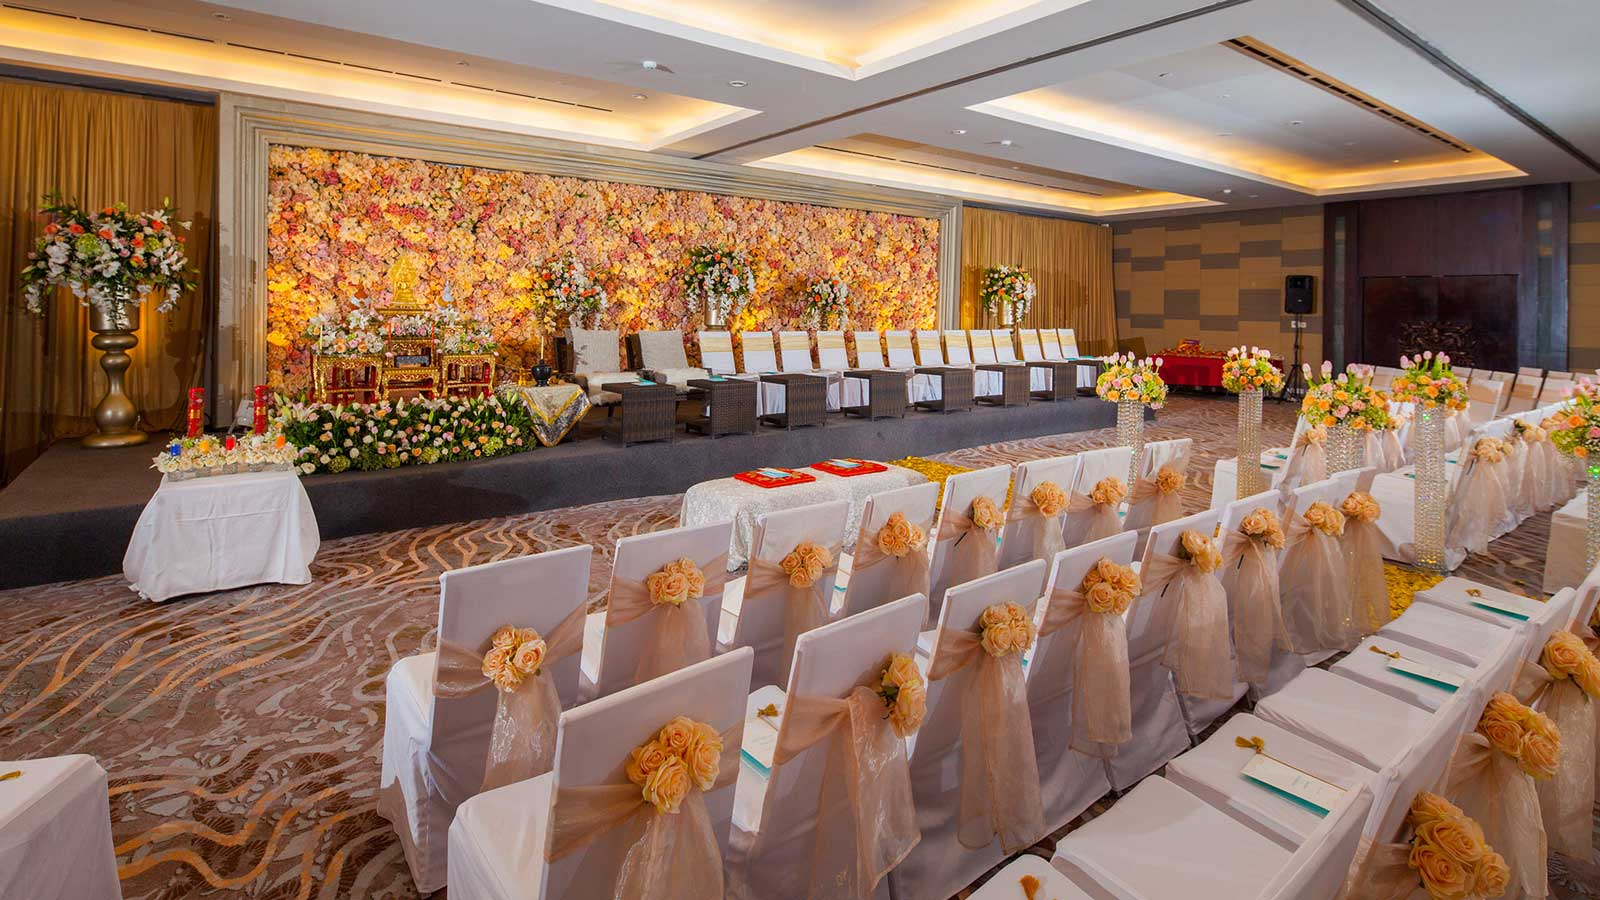 Indoor Bali wedding venues in Tanjung Benoa - Nusa Dua | The Sakala Ballroom